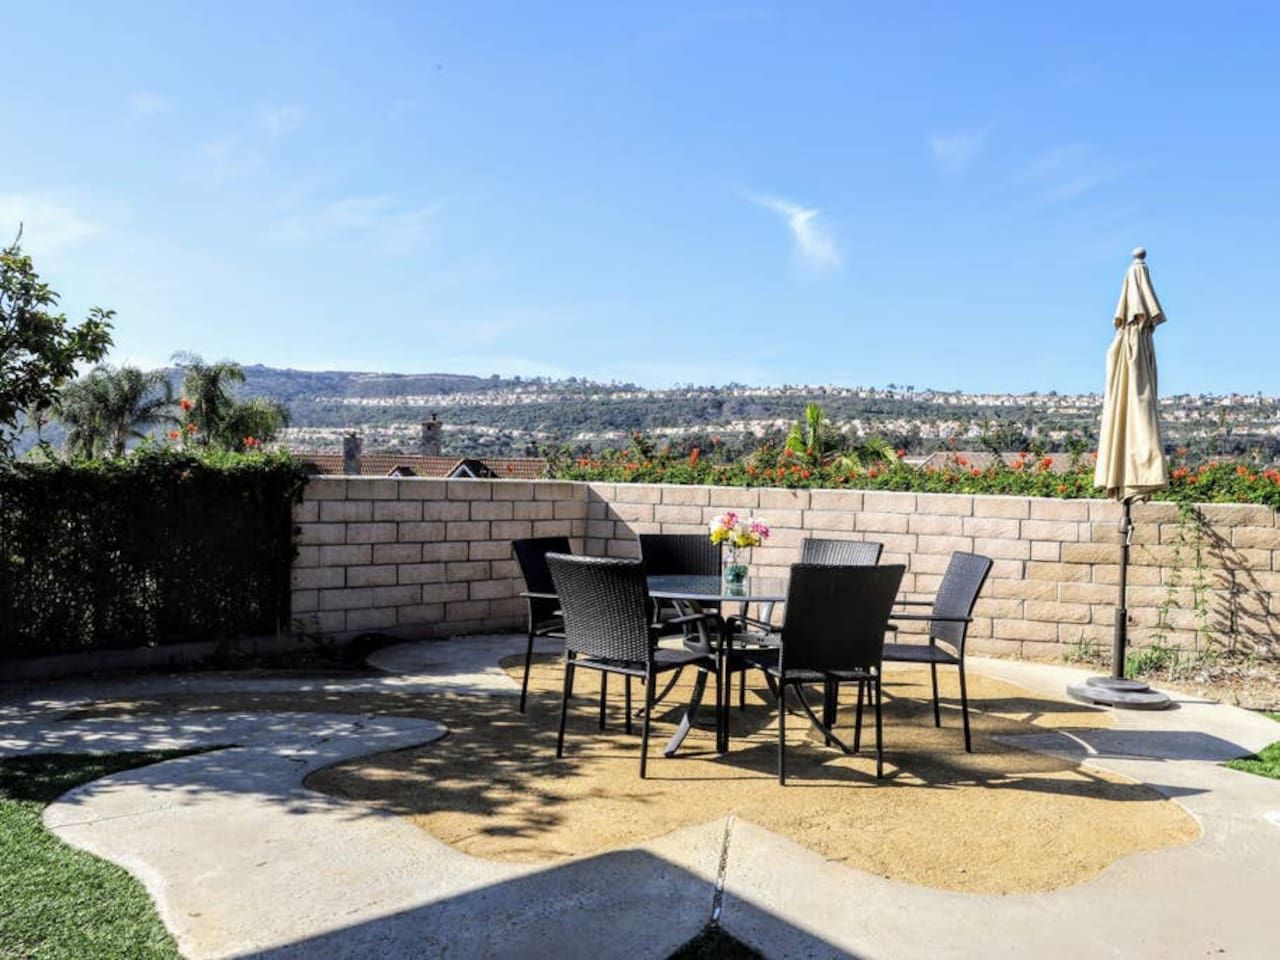 Enjoy this gorgeous view and this outdoor sitting area in the private backyard